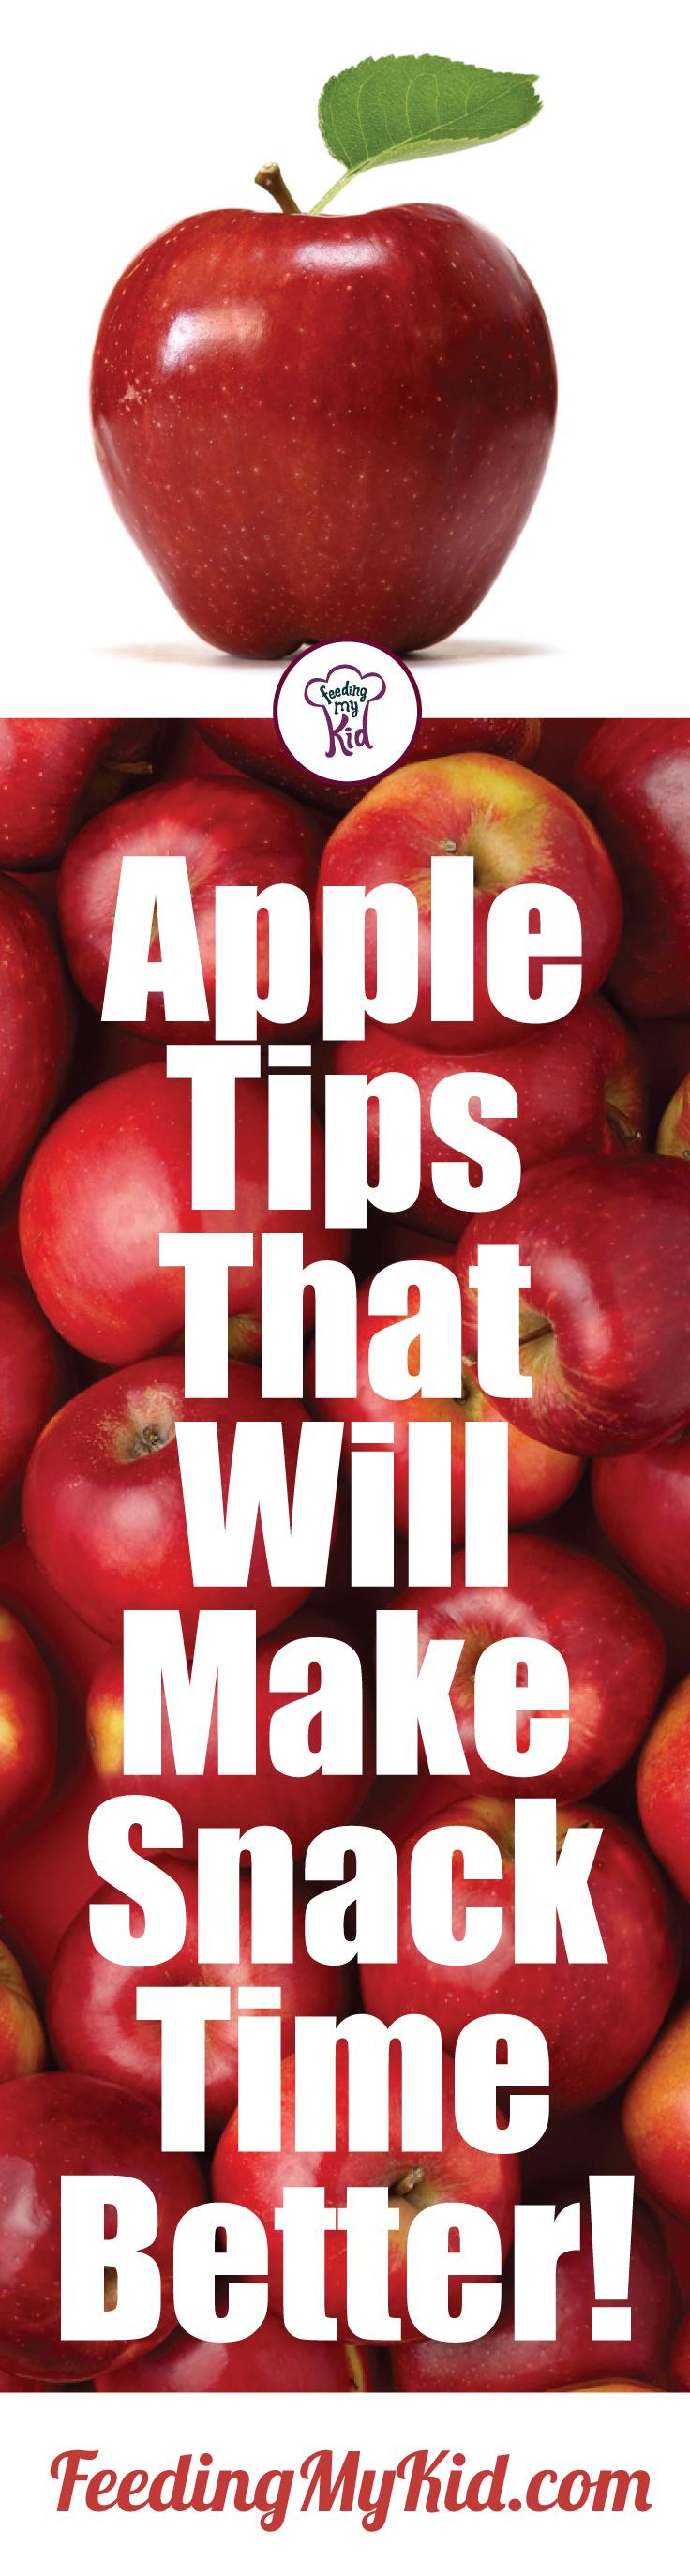 Check out these awesome apple tips that'll help you make the apple an amazing snack! Feeding My Kid is a filled with all the information you need about how to raise your kids, from healthy tips to nutritious recipes. #FeedingMyKid #appletips #snacking #snacks